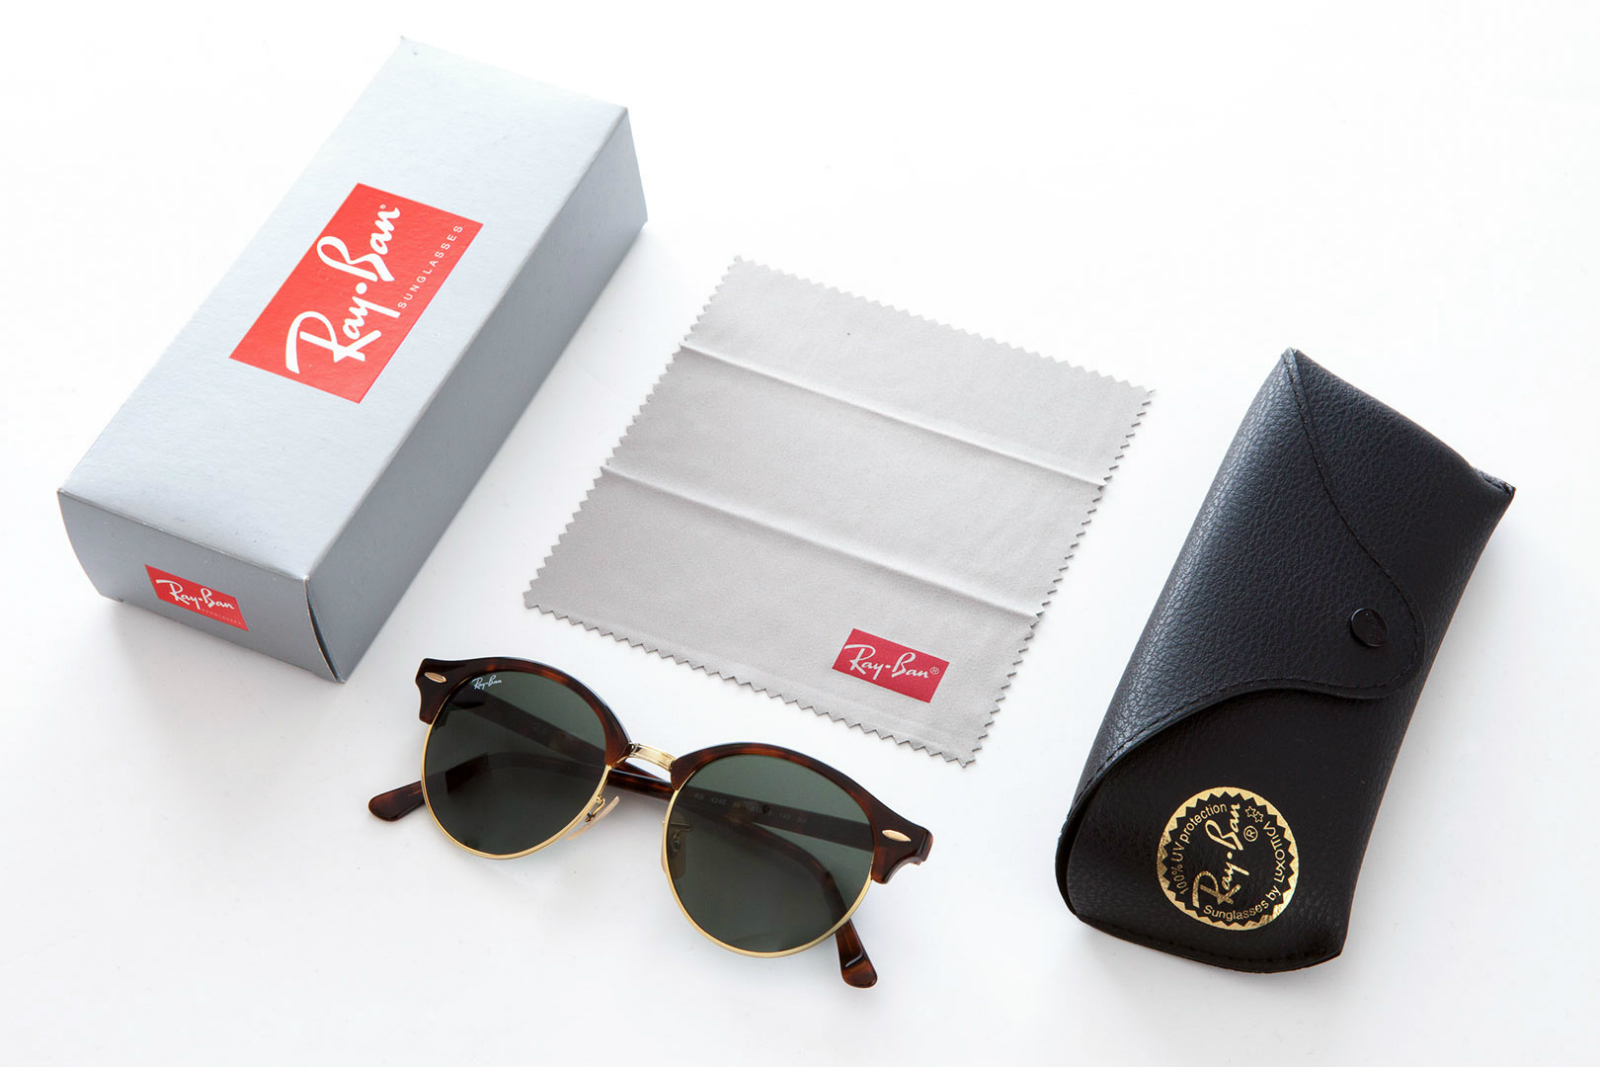 63691e8d42 How to Spot Fake Ray-Ban Sunglasses - A Detailed 5 Step Guide | Blog ...